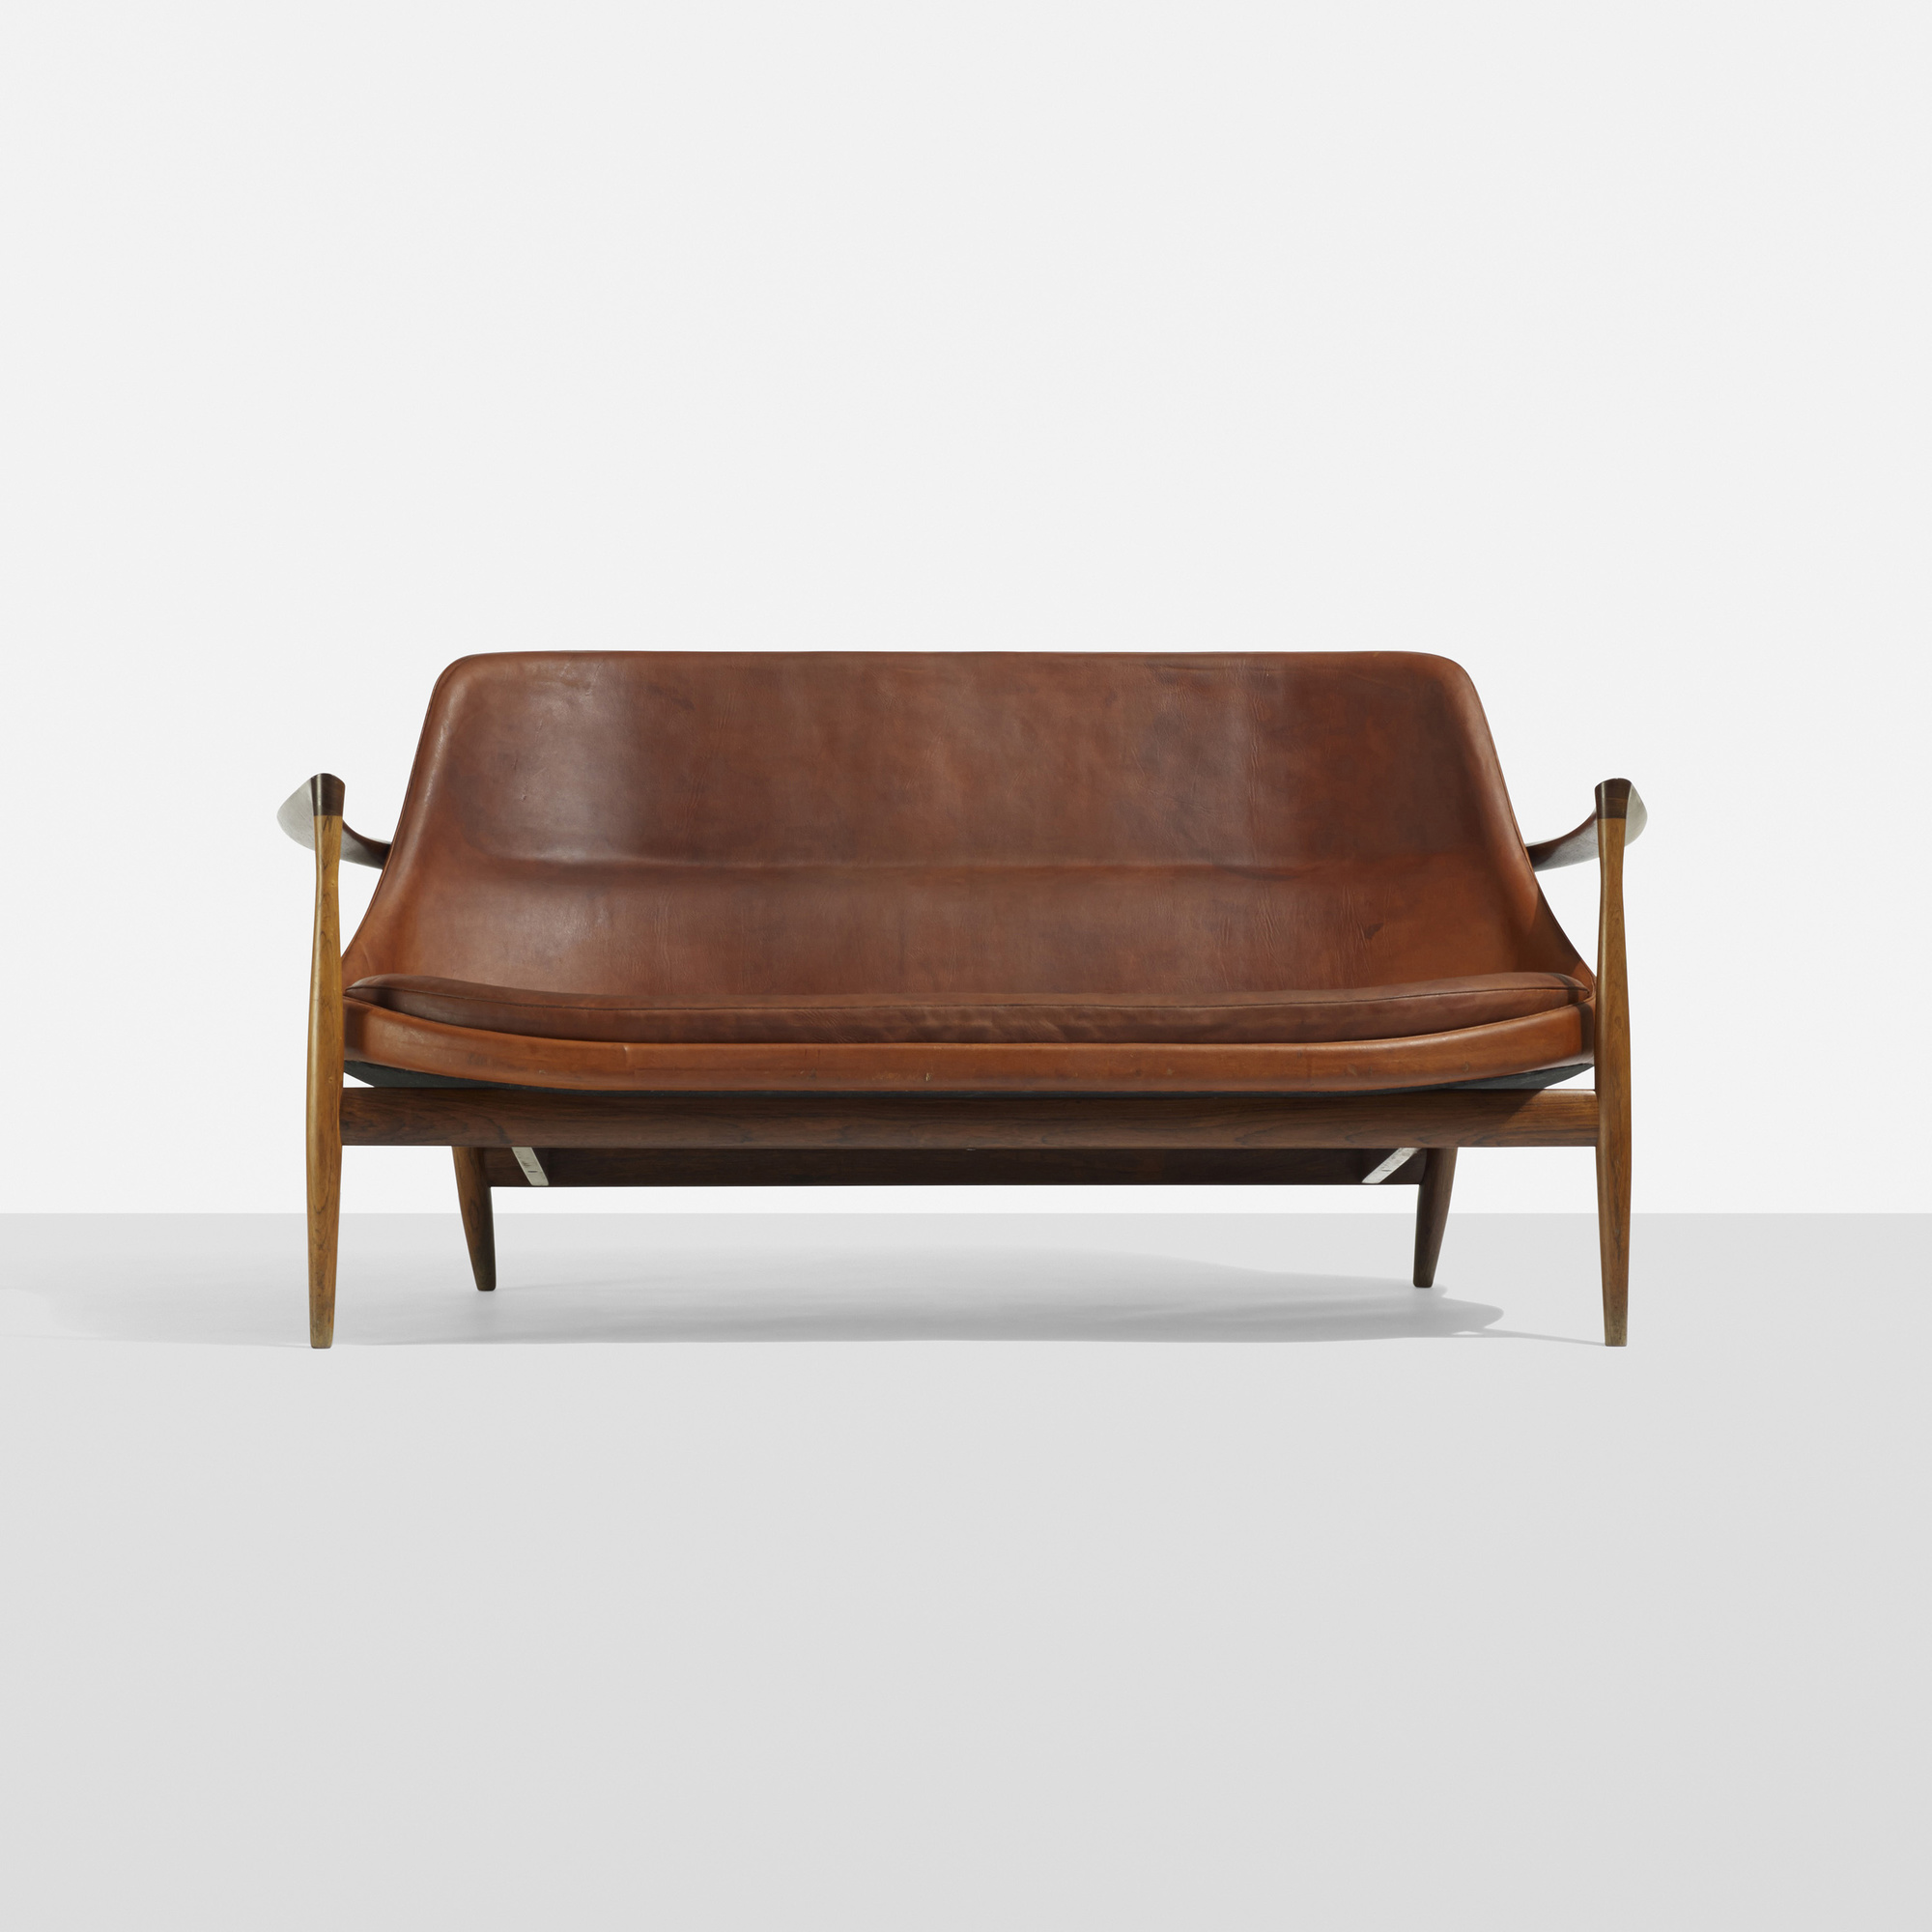 149 ib kofod larsen rare elizabeth sofa for Danish design sofa